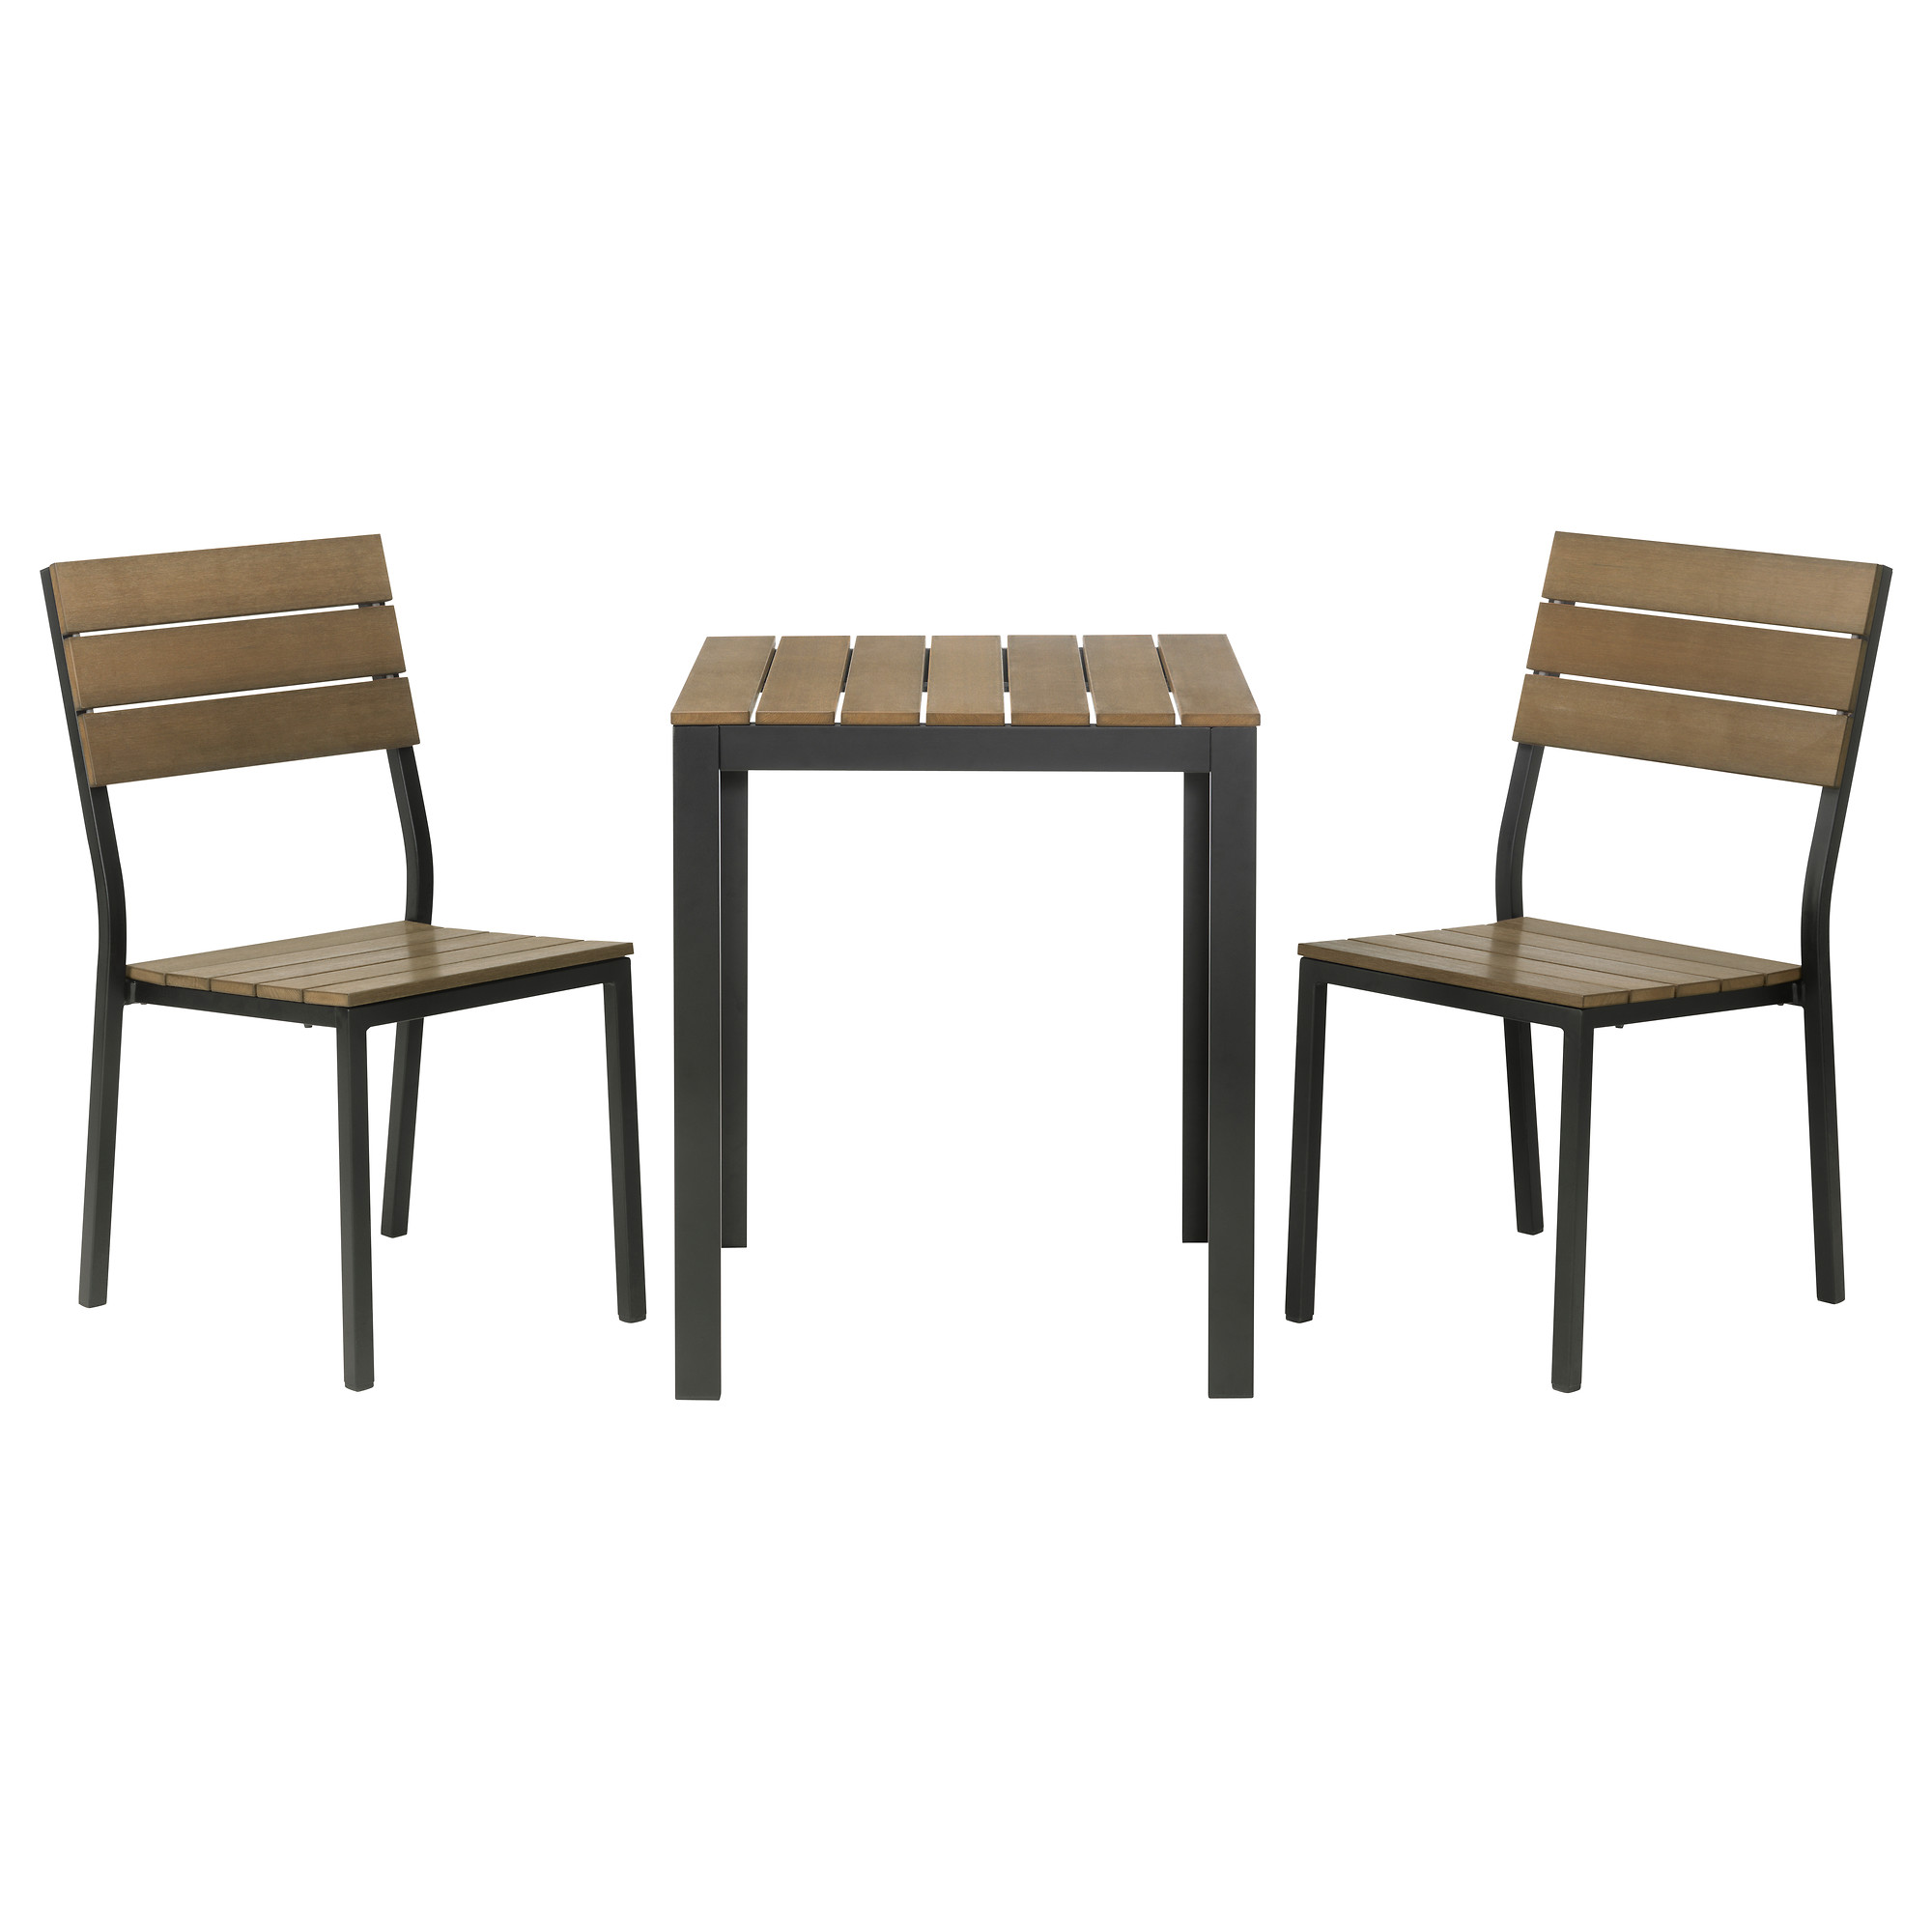 beautiful outdoor bistro set ikea homesfeed. Black Bedroom Furniture Sets. Home Design Ideas